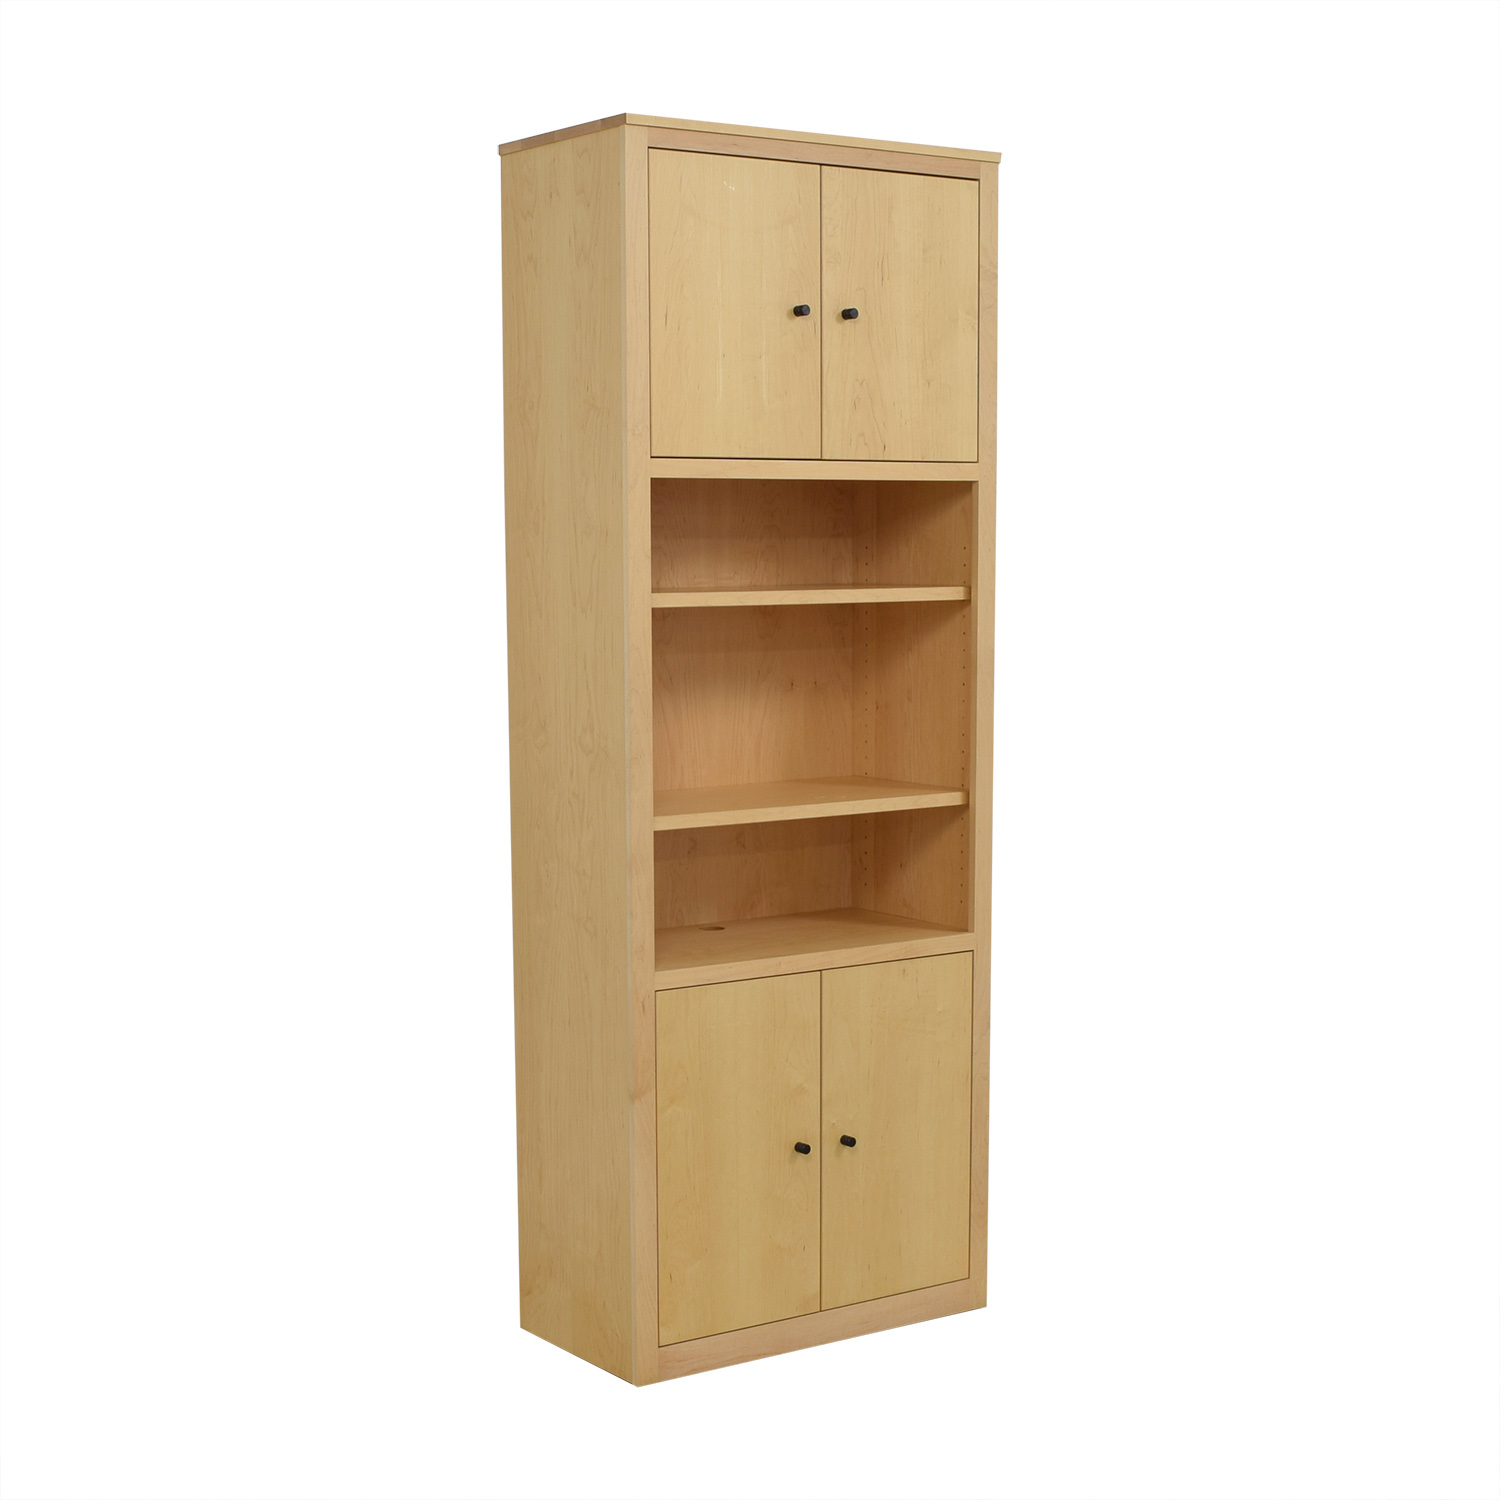 Room & Board Room & Board Woodwind Bookcase with Doors Bookcases & Shelving